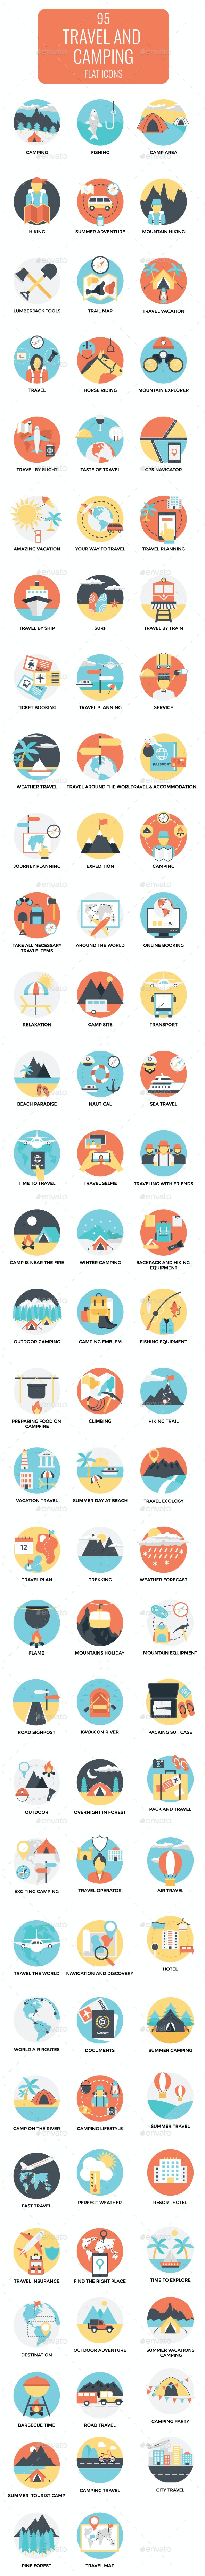 95 Flat Travel and Camping Icons - Icons